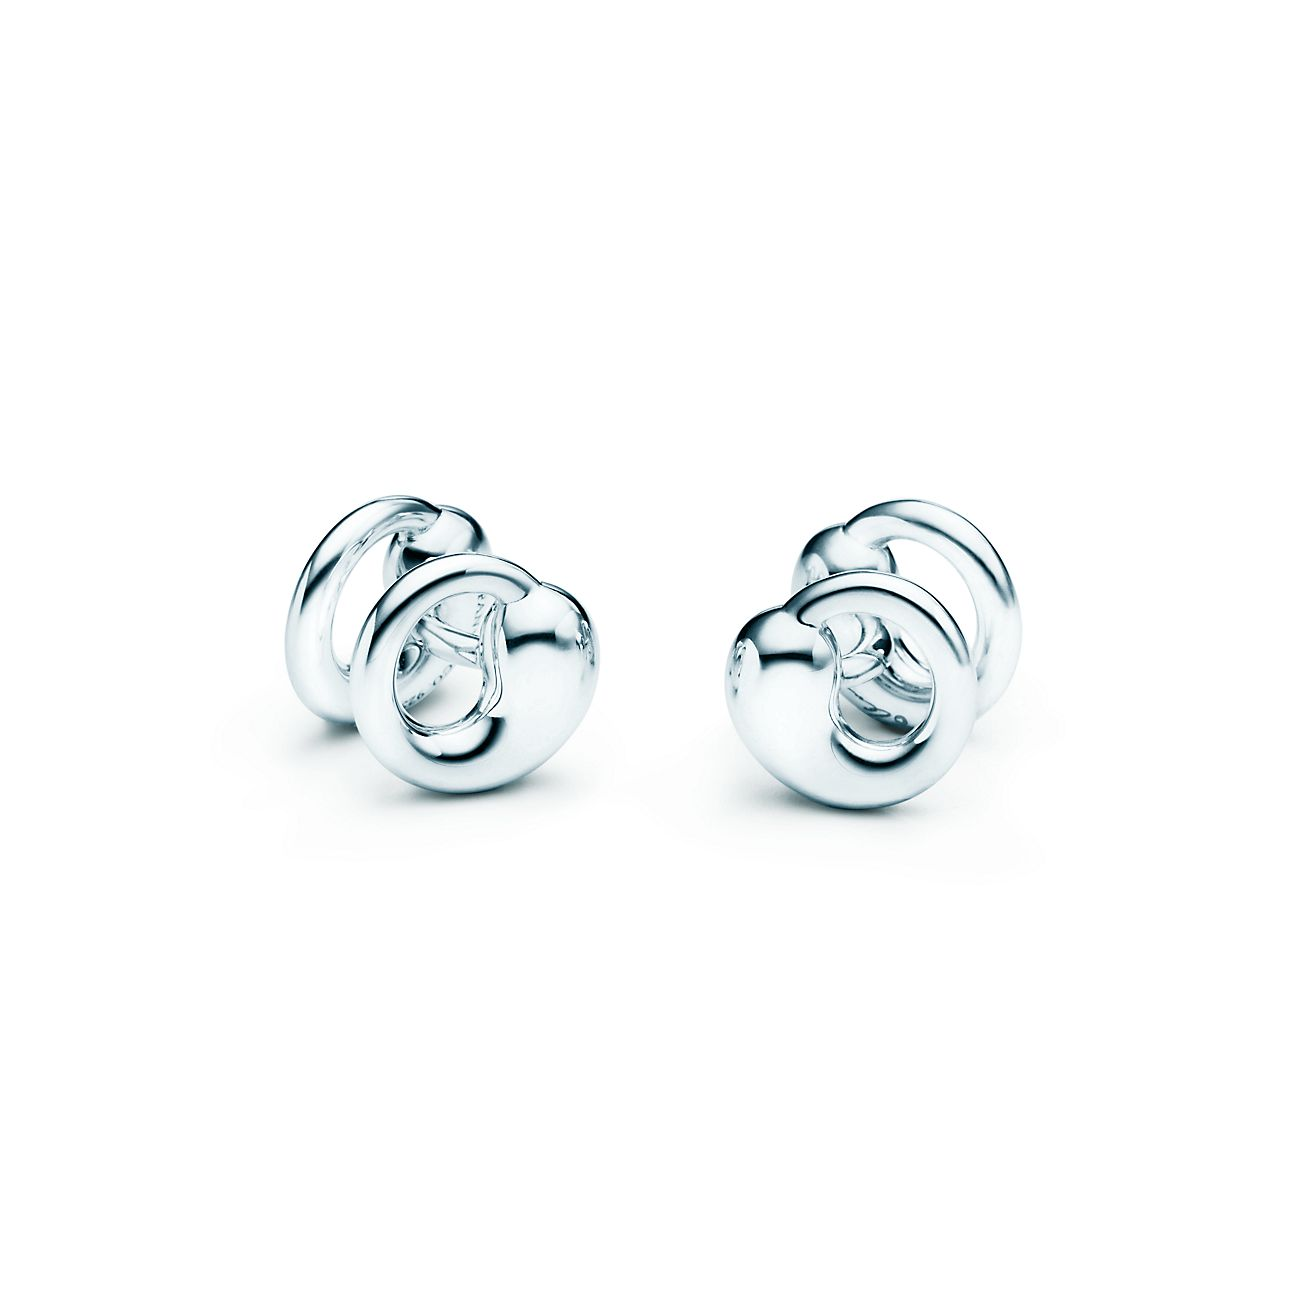 Accessories Cuff Links Elsa Peretti Circle Cuff Links 12026226 Return To Tiffany Cufflinks